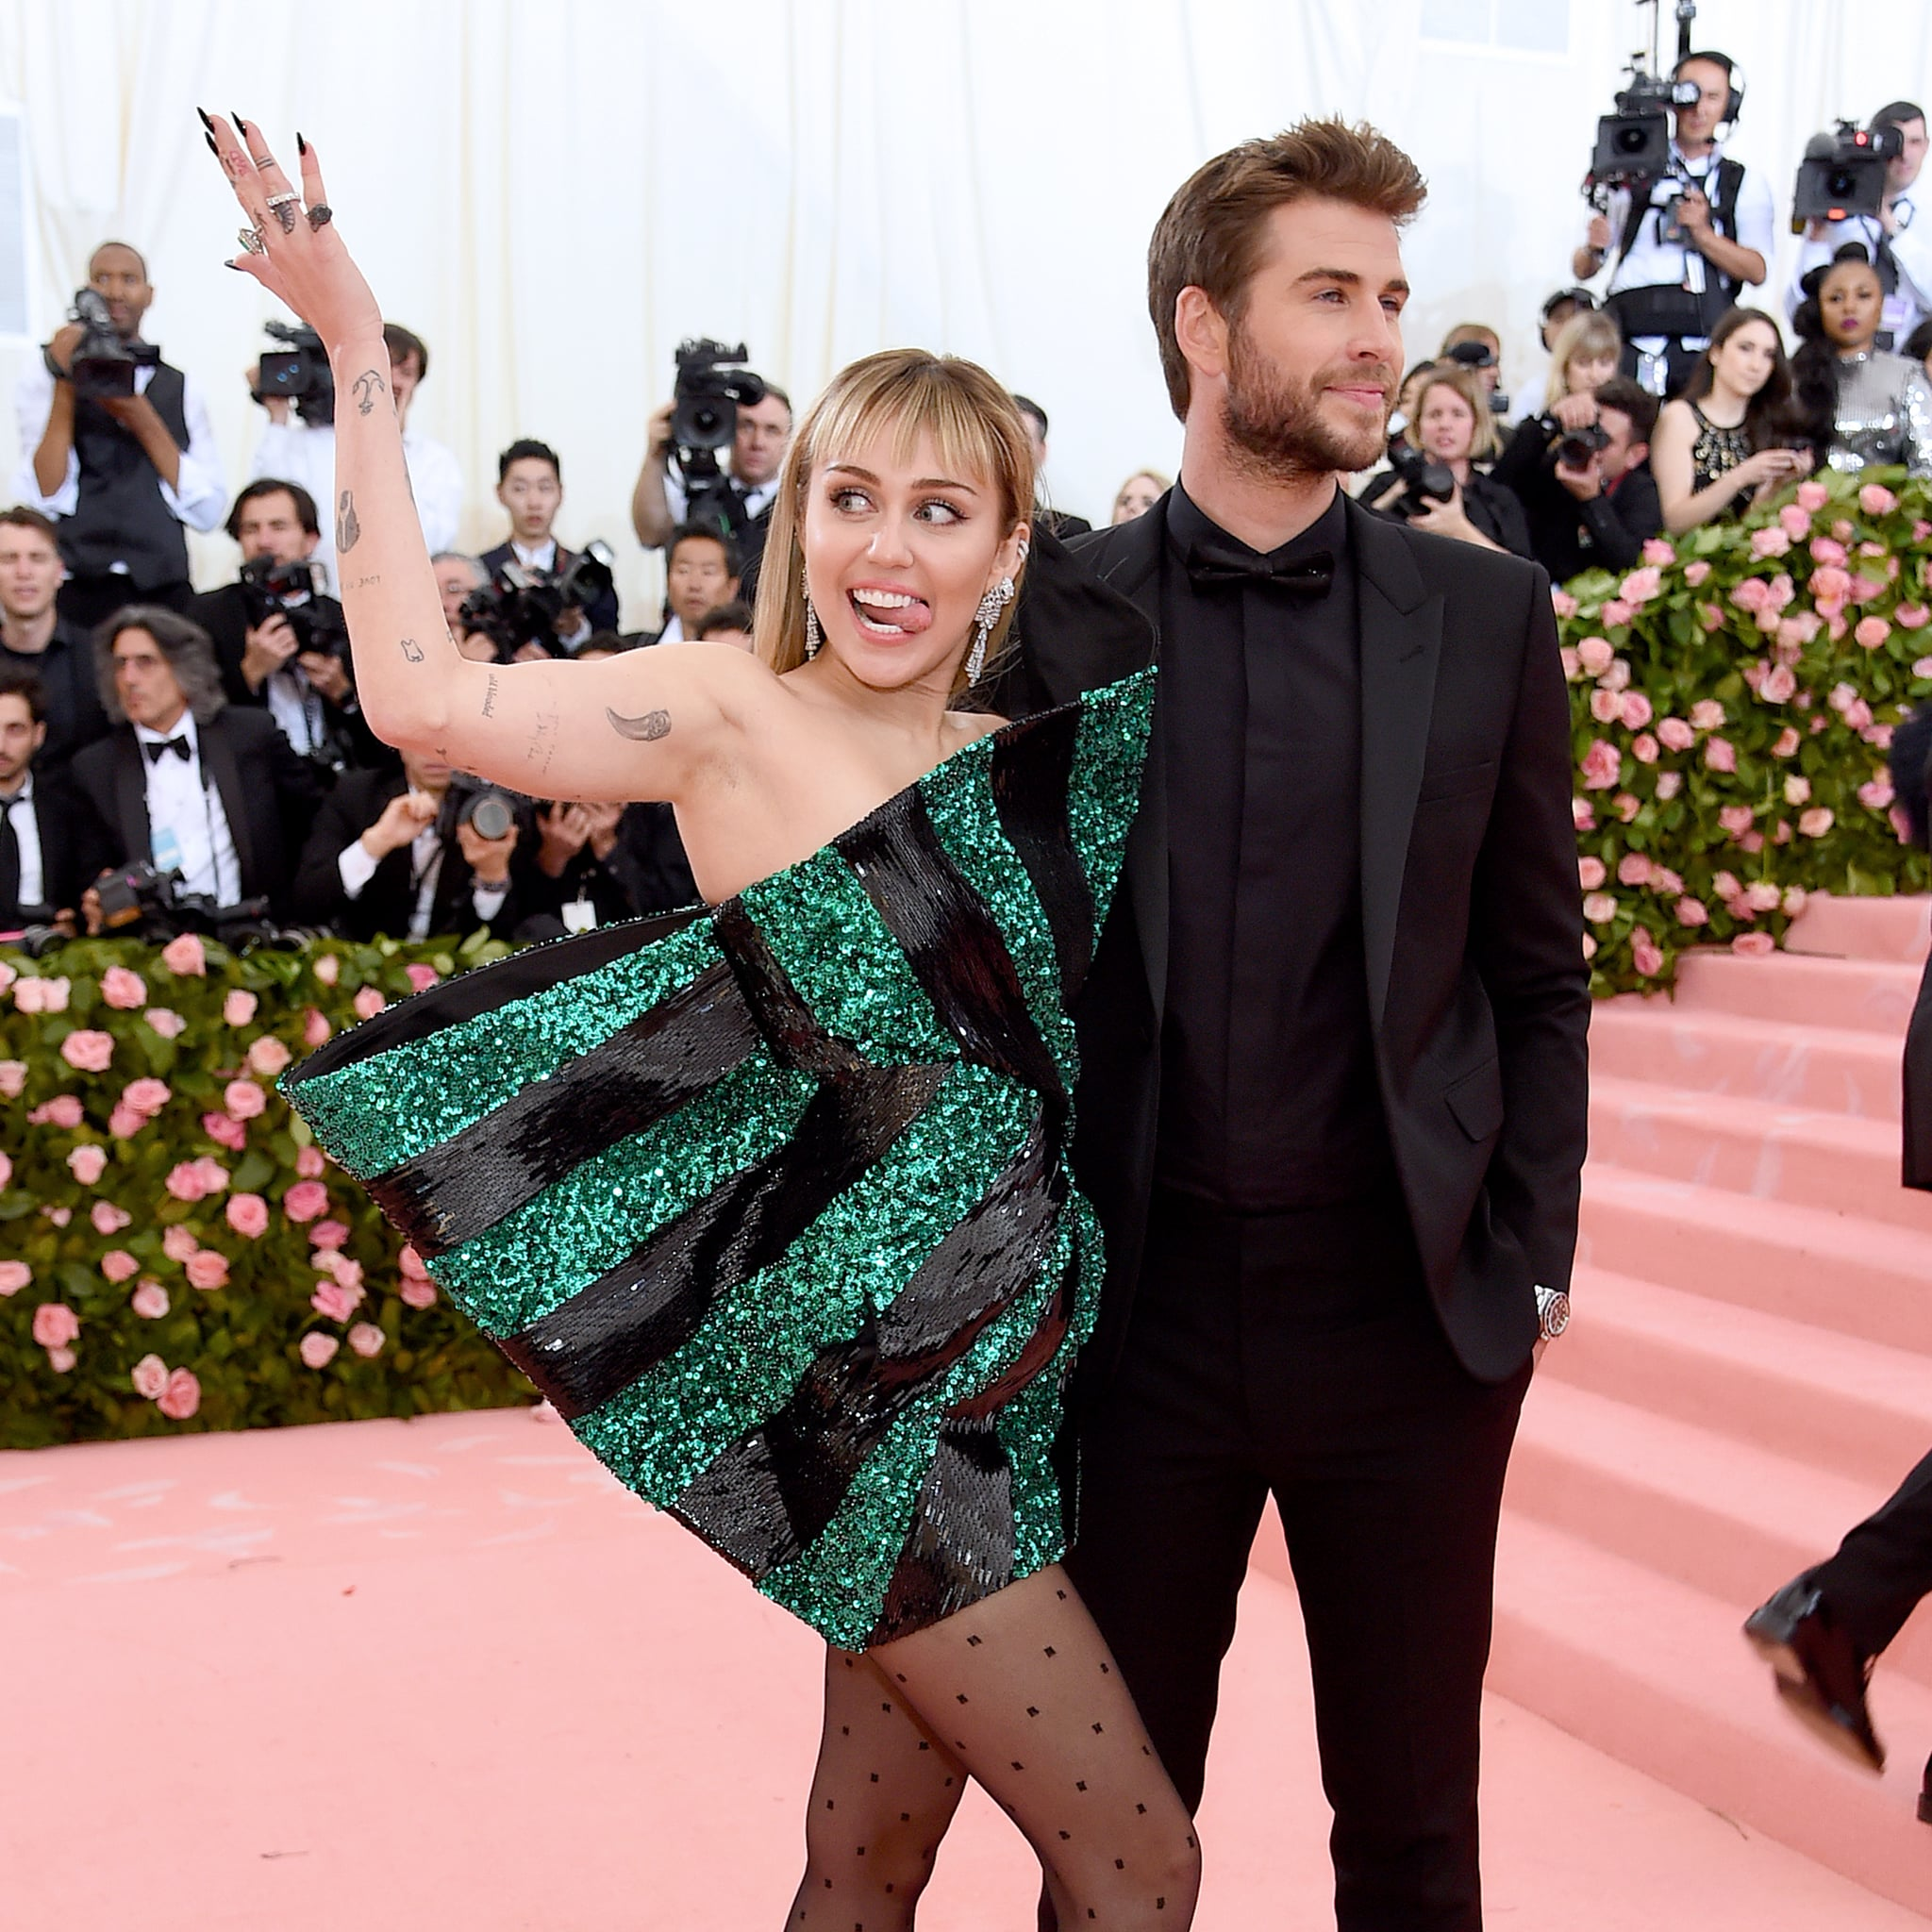 What's Trending Now Everything You Need To Know About The MET Gala 6 trending now What's Trending Now: Everything You Need To Know About The MET Gala! Whats Trending Now Everything You Need To Know About The MET Gala 6